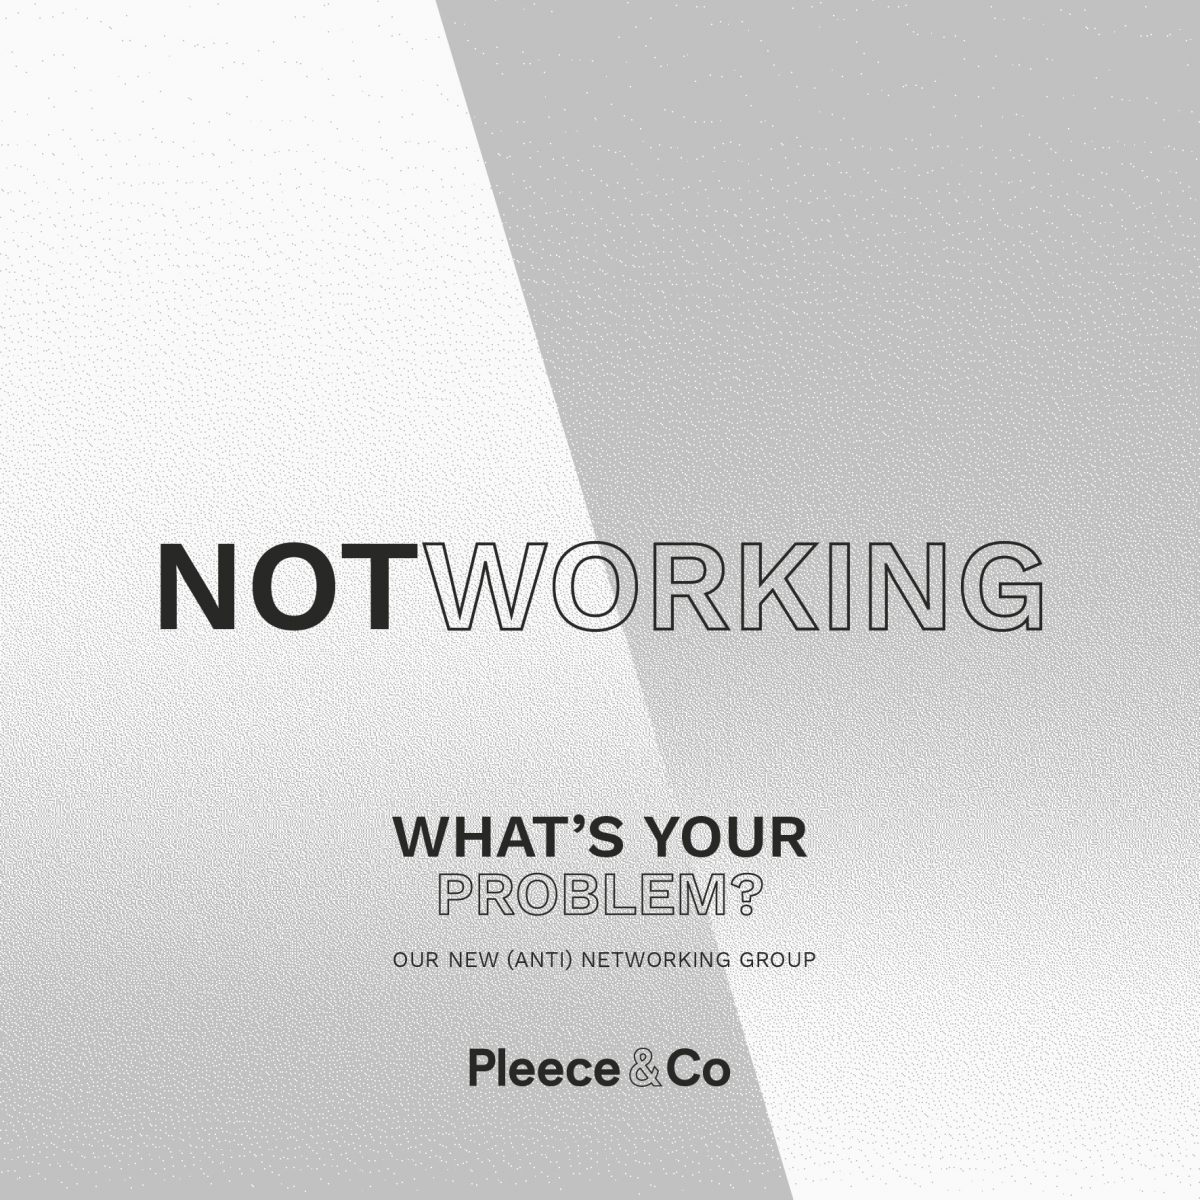 What's Your Problem?  Our new (anti) networking group